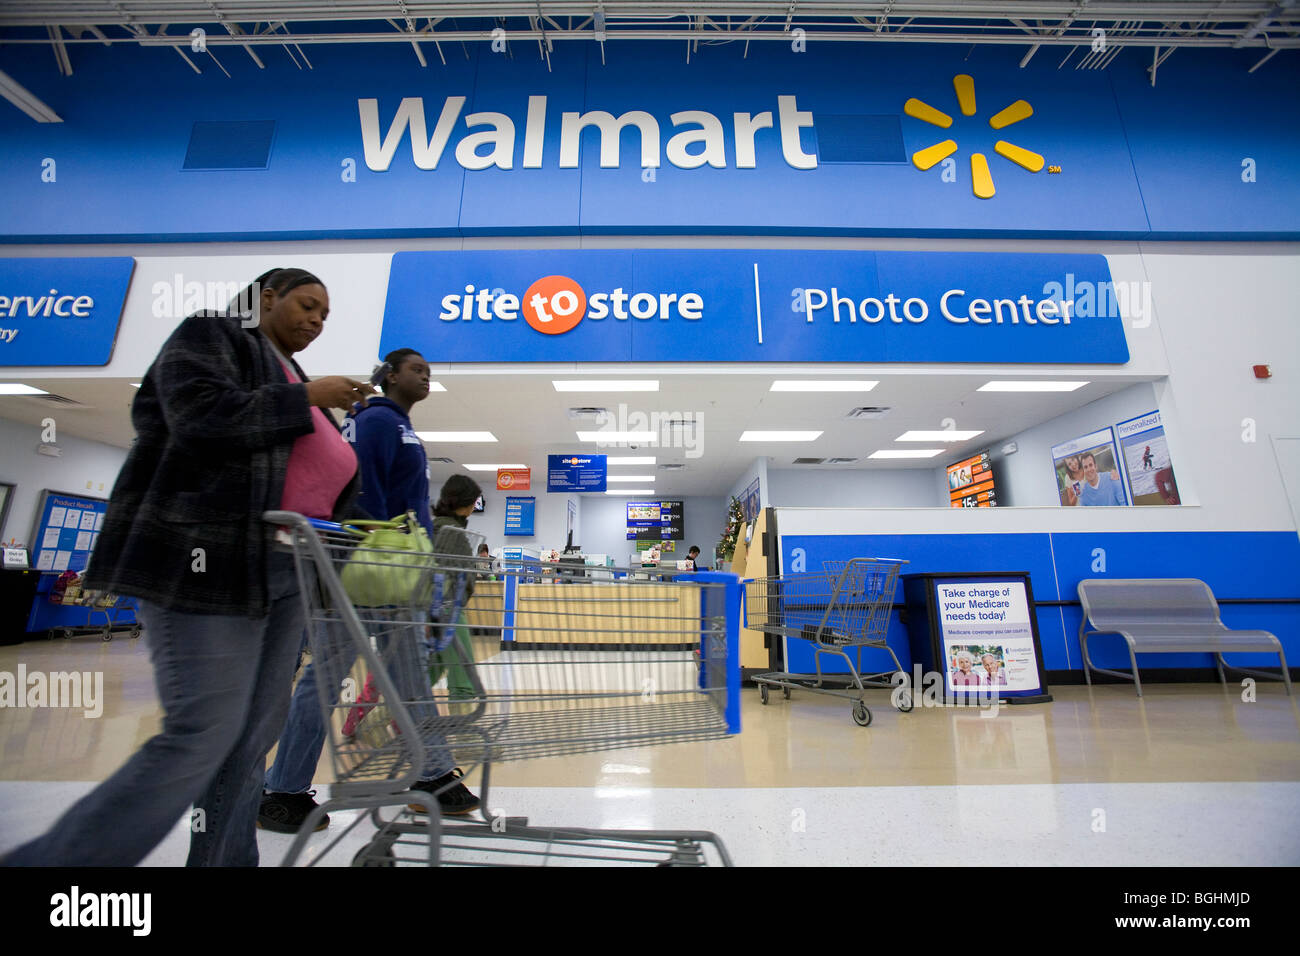 Giant Shopper Stockfotos & Giant Shopper Bilder - Alamy